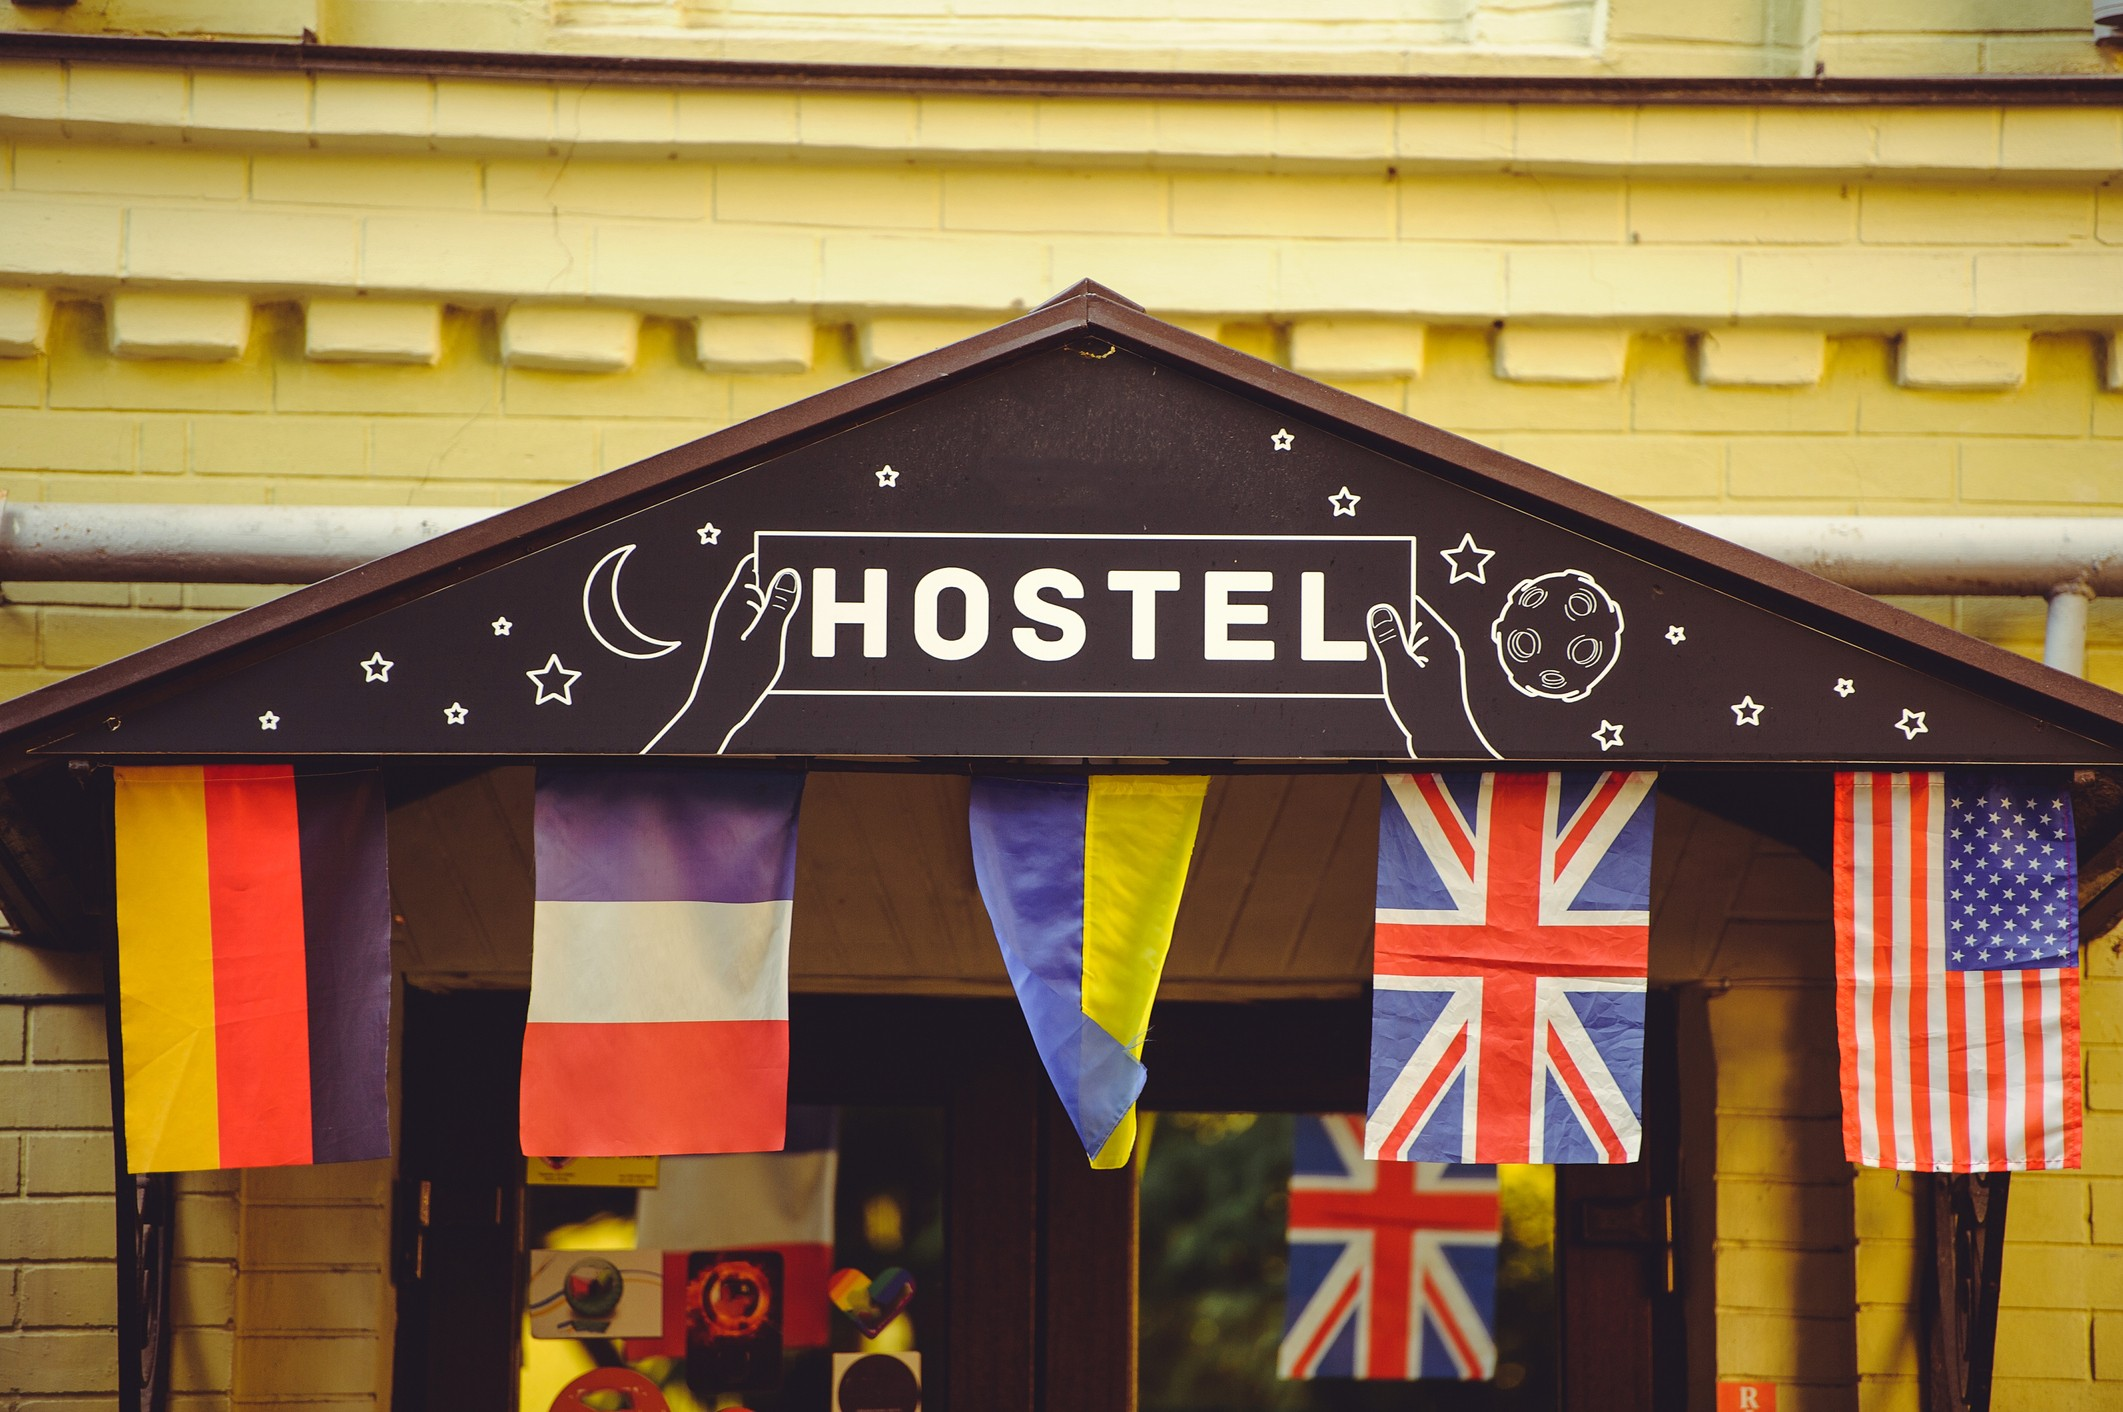 Sign for hostel displaying flags